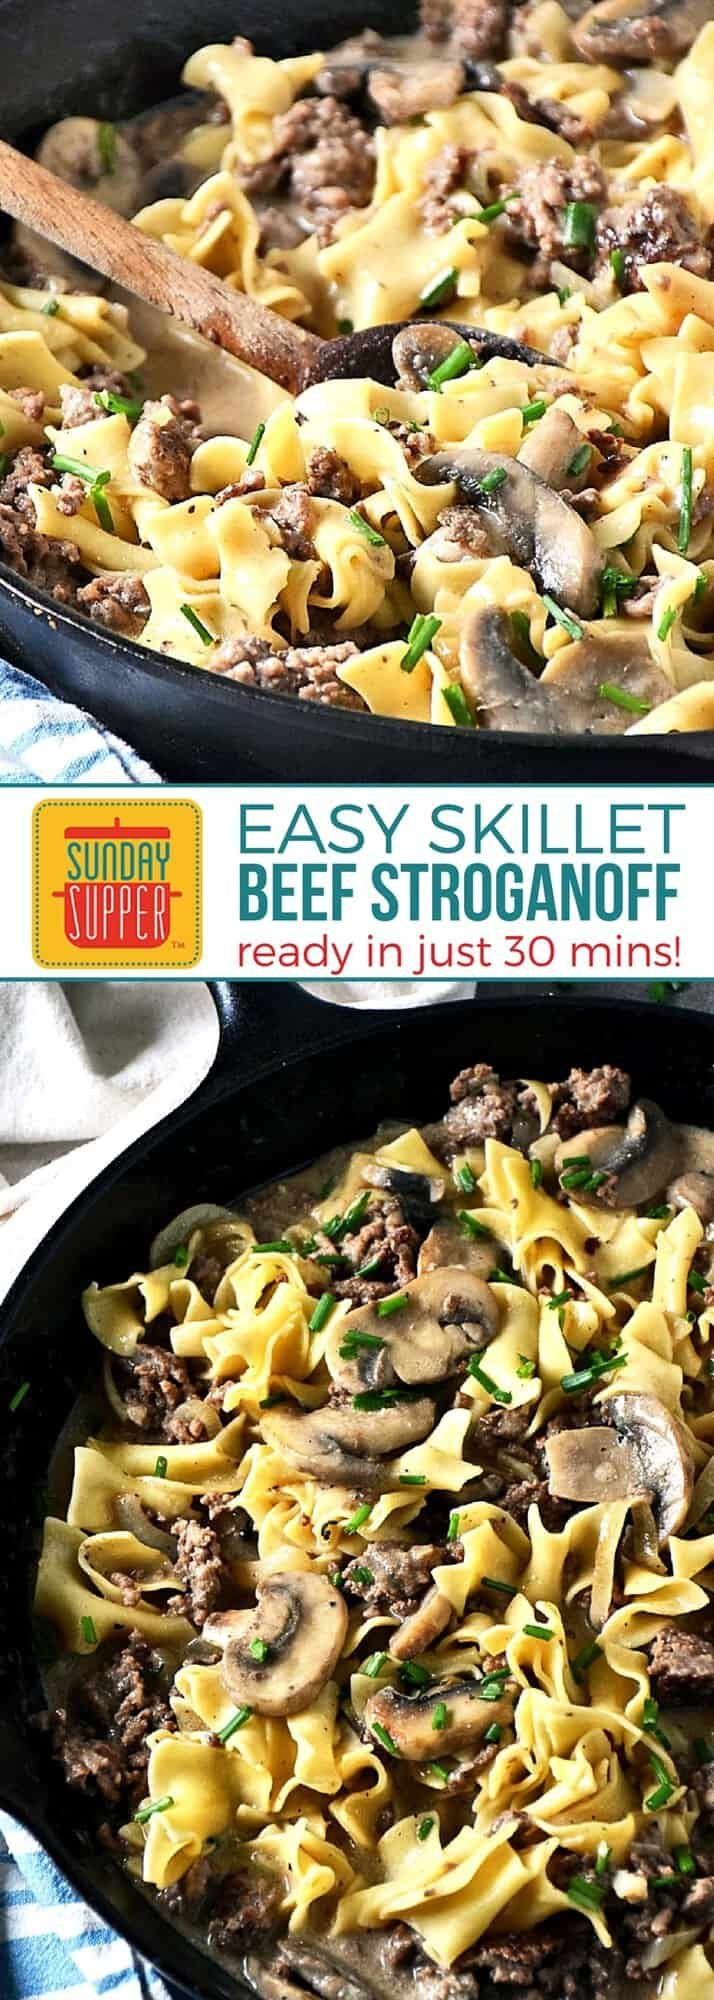 Hamburger stroganoff is an easy recipe ready in just 30 minutes! Our best Ground Beef Stroganoff recipe is perfect for any night of the week, including your Sunday dinner ideas. This is one of the easiest meal ideas with ground beef you can make, and you can do it all in one skillet! #SundaySupper #groundbeefstroganoff #stroganoff #beefstroganoff #stroganoffrecipes #castironskillet #dinners #easyrecipes